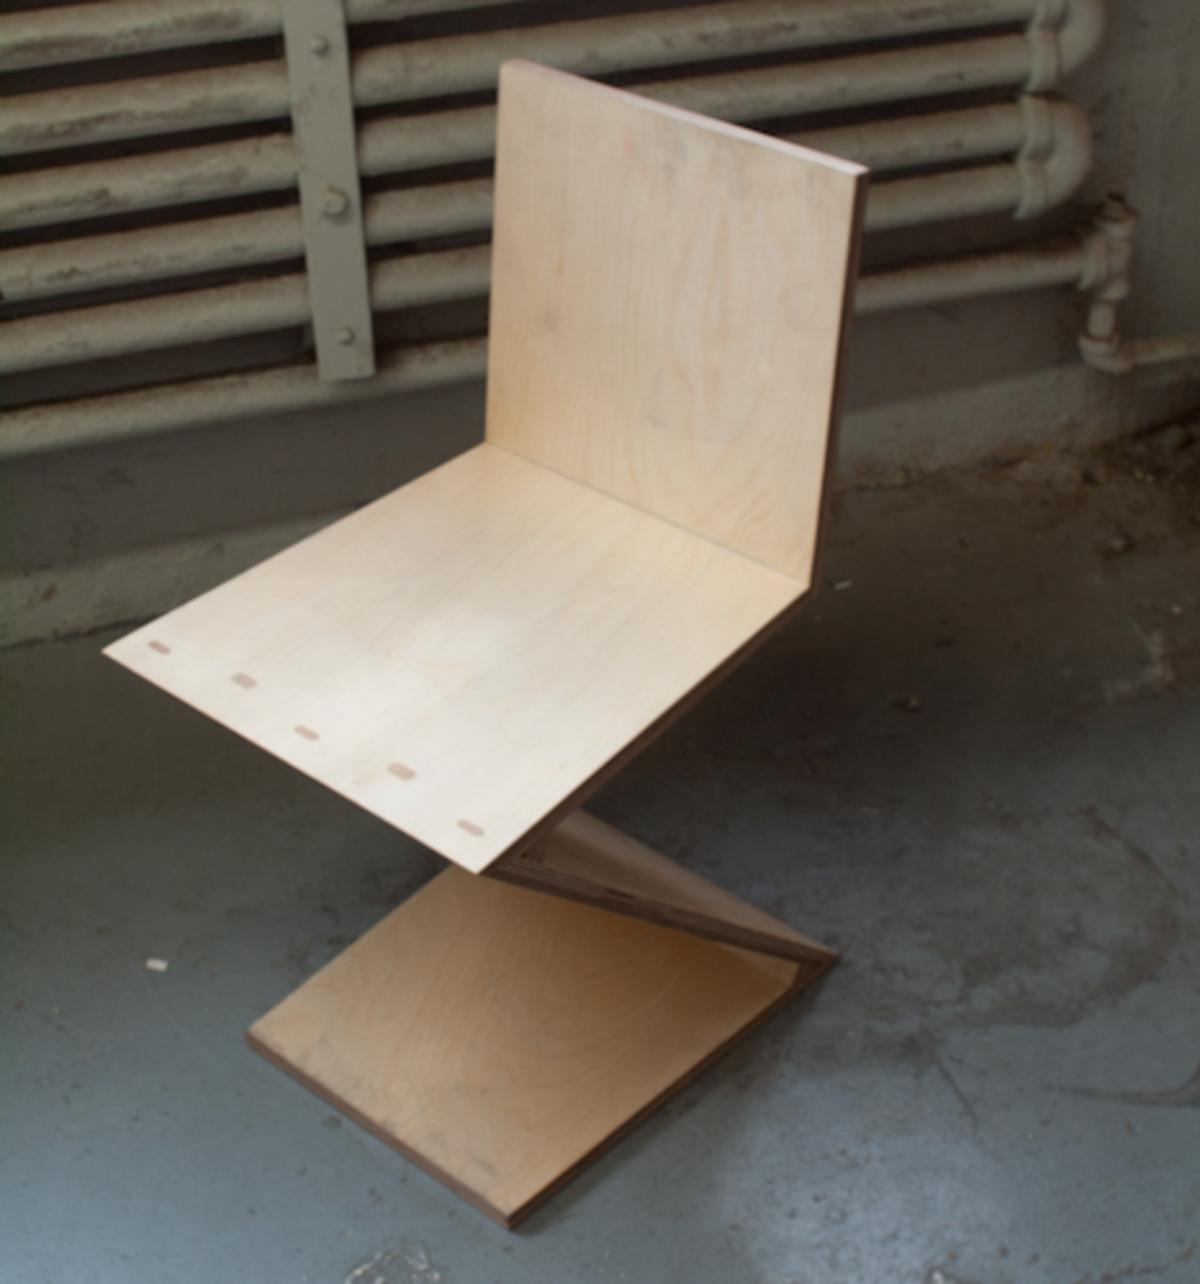 Modern Furniture Construction - Making a Zig-Zag Chair 1